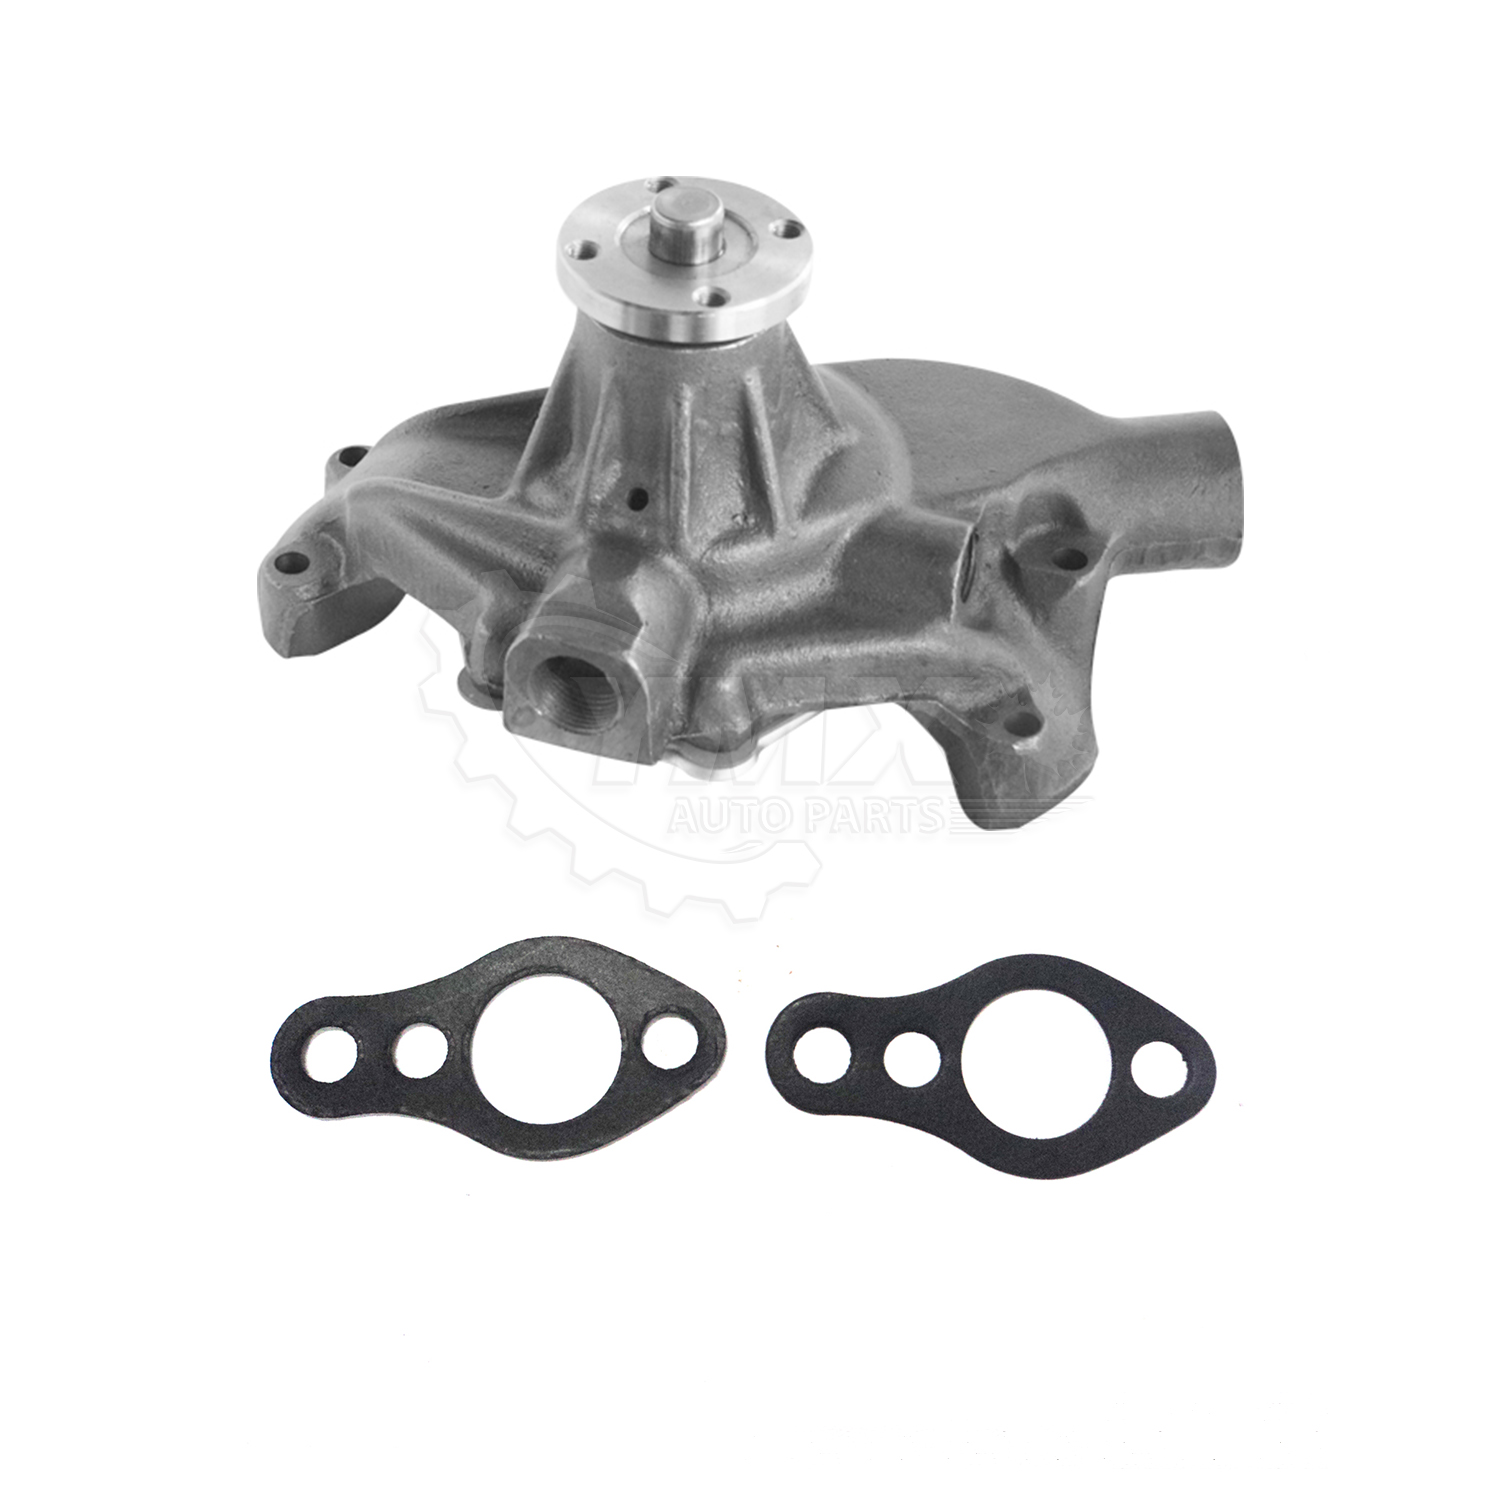 New Water Pump w// Gasket For Chevy Corvette GMC C5000 C6000 5.7L AW984 130-1310